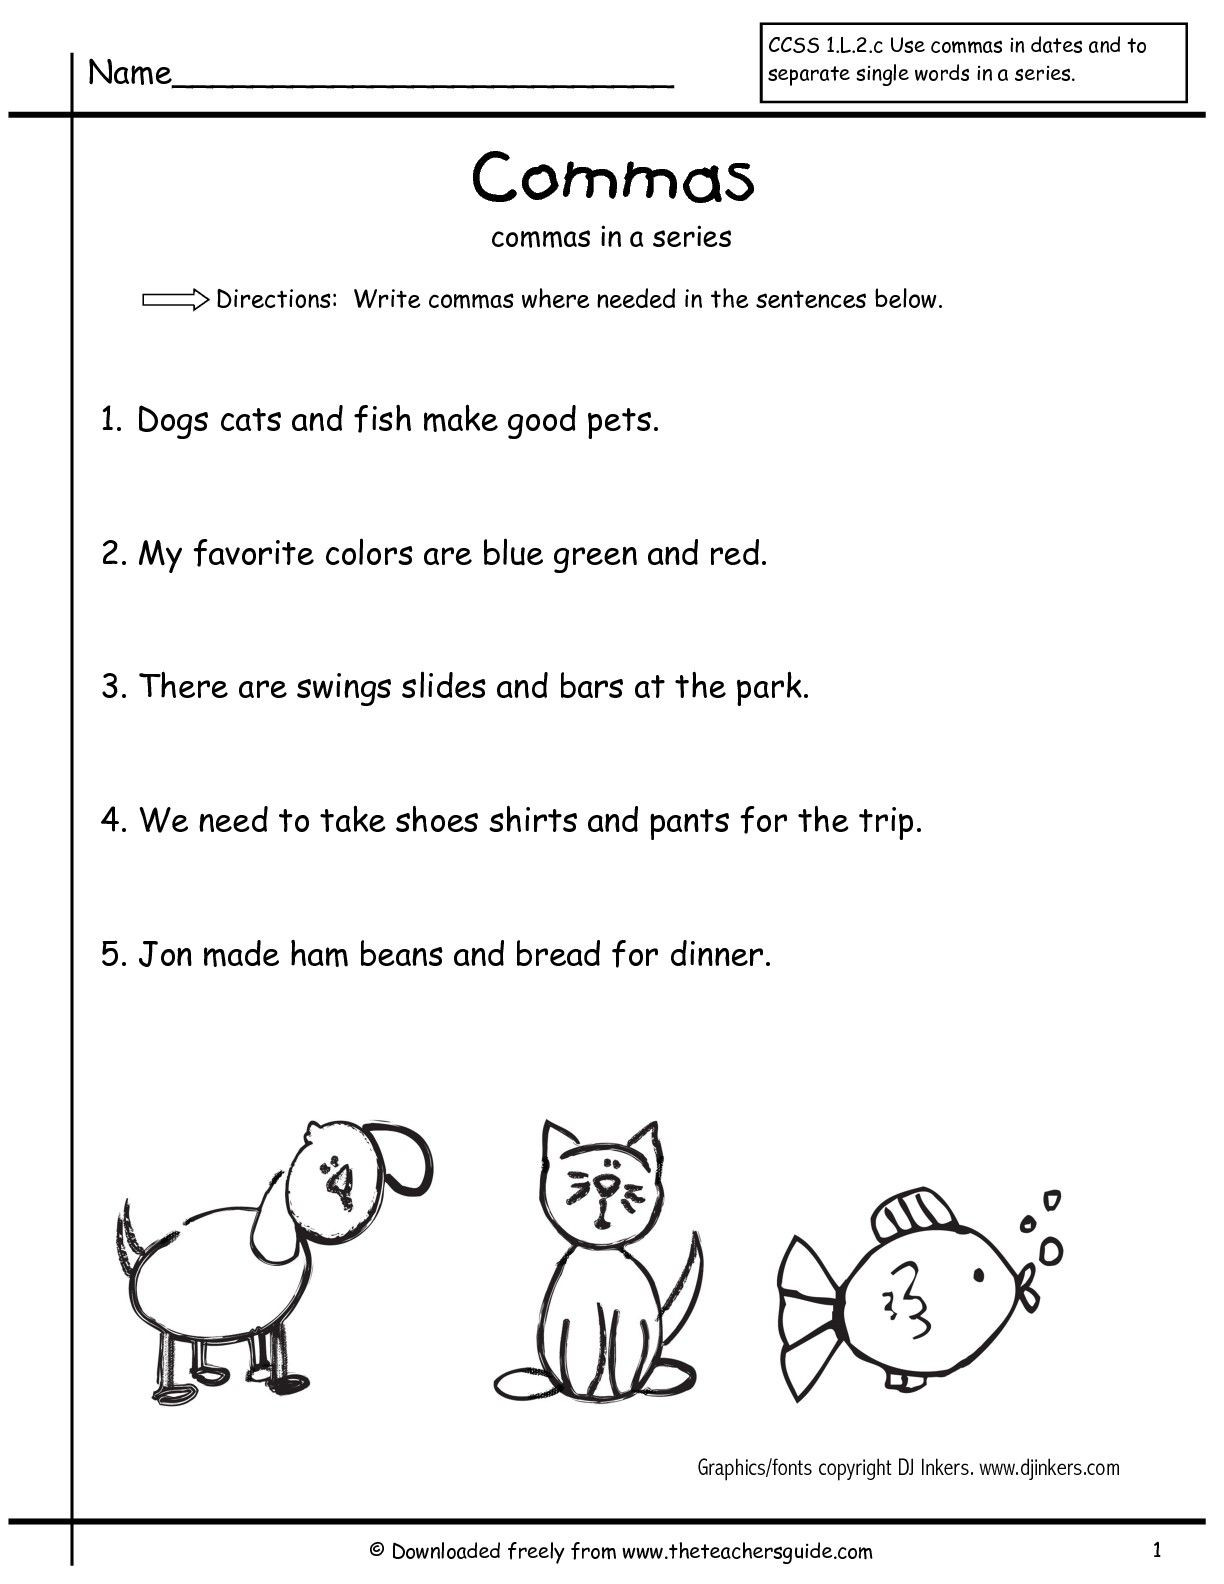 Commas Worksheet 5th Grade Grammar Worksheets Mas In A Series First Grade Free